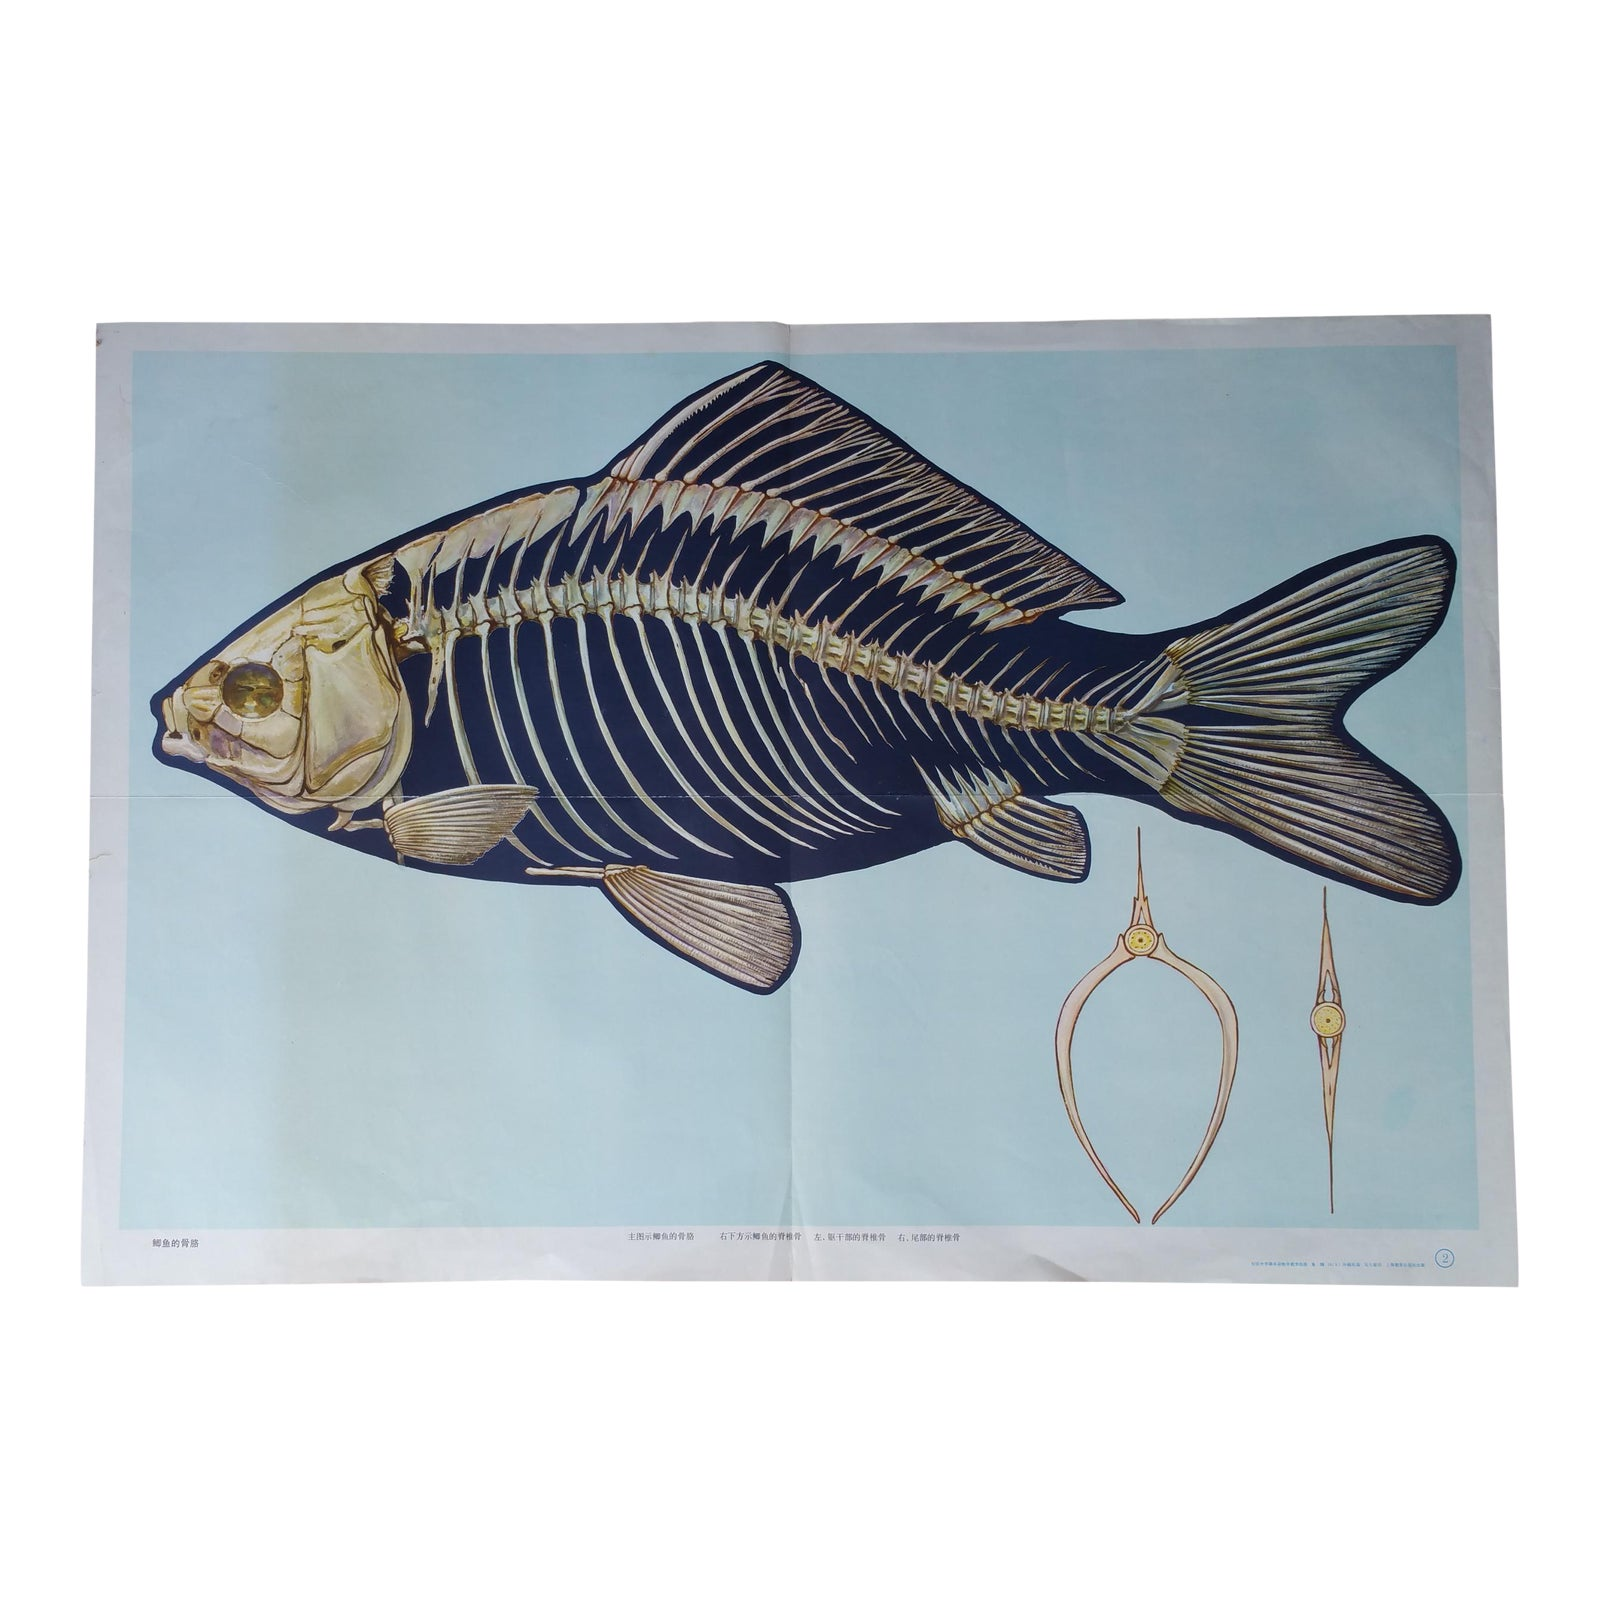 Vintage Fish Anatomy Poster | Chairish